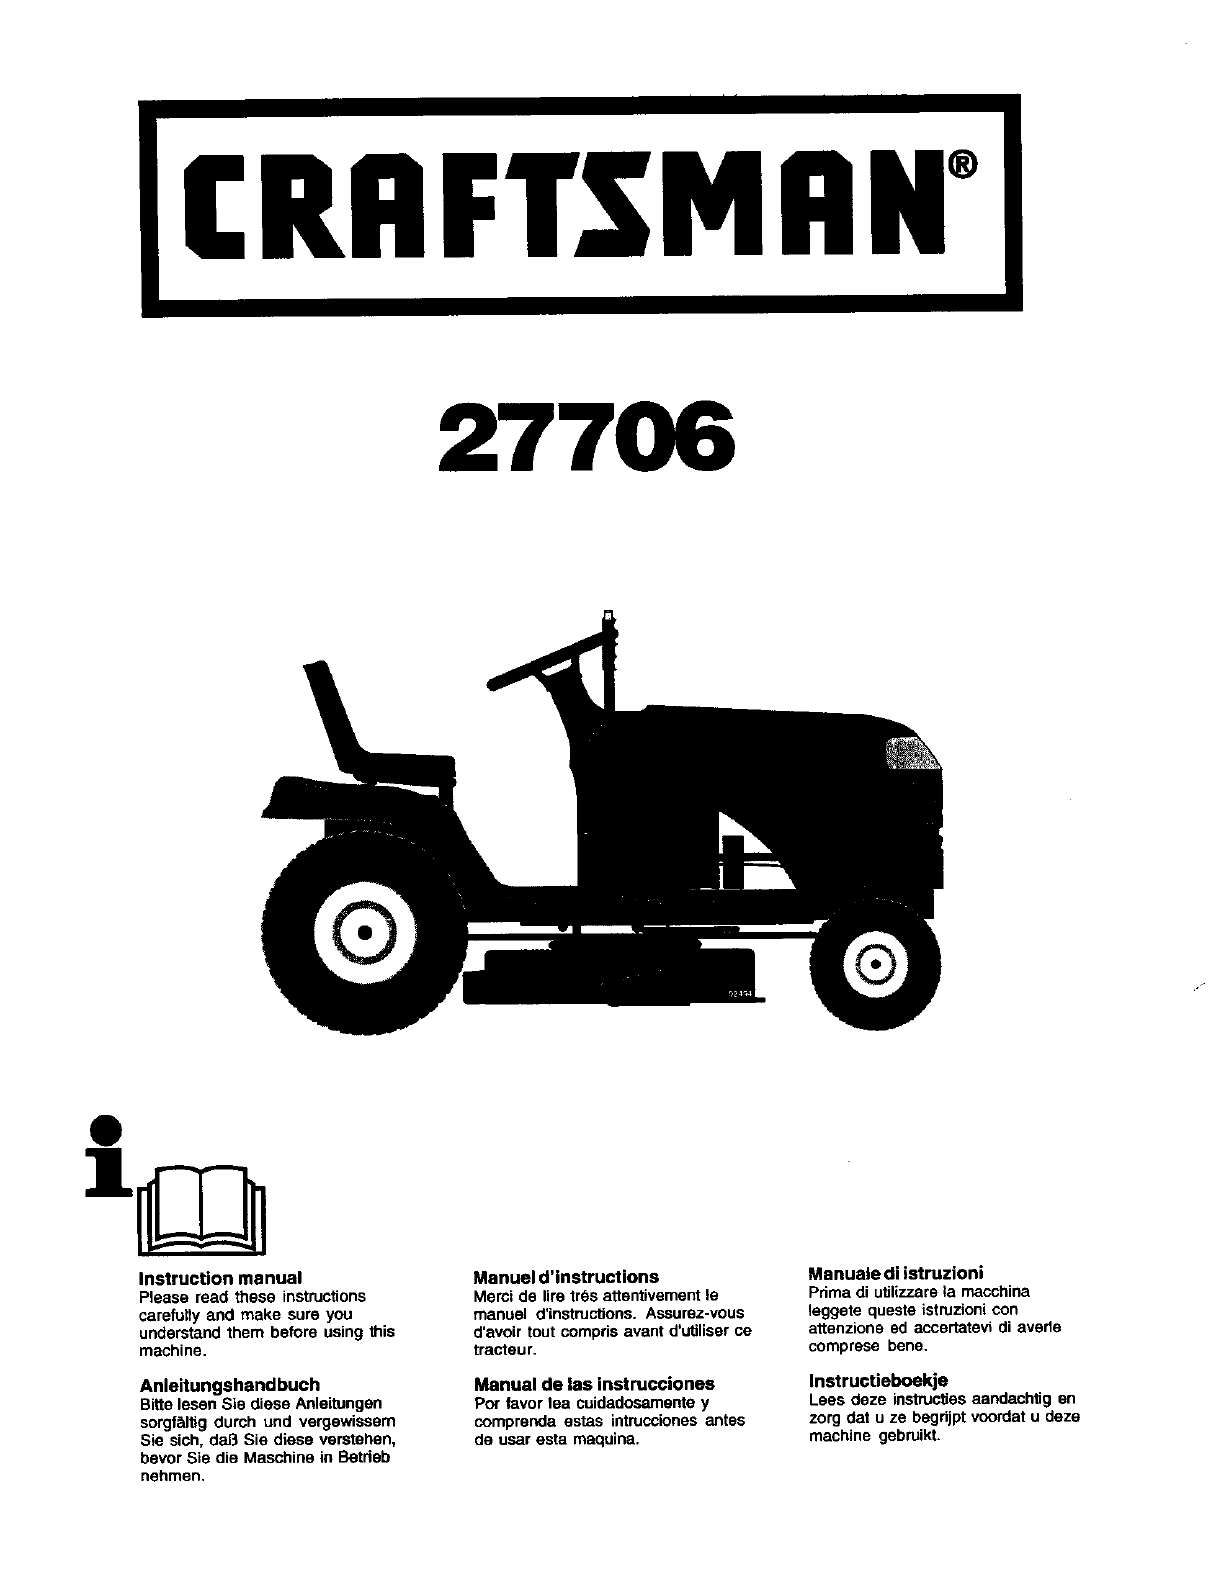 Il Tappeto Volante Wiki Craftsman 917277060 User Manual Lawn Tractor Manuals And Guides